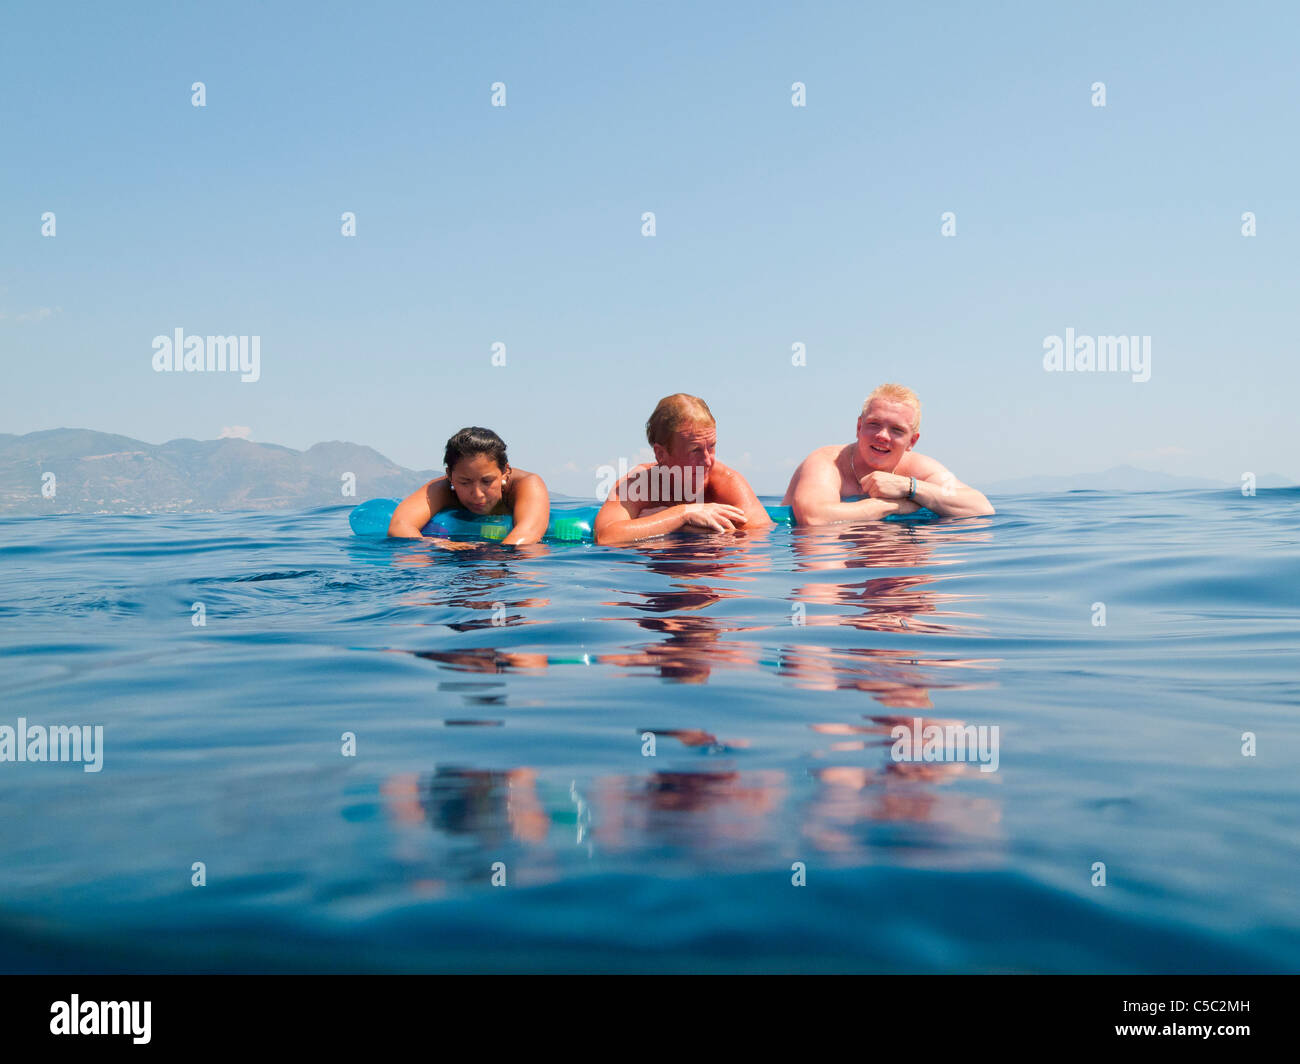 Three people on the air mattresses floating in a row at the sea against clear sky - Stock Image